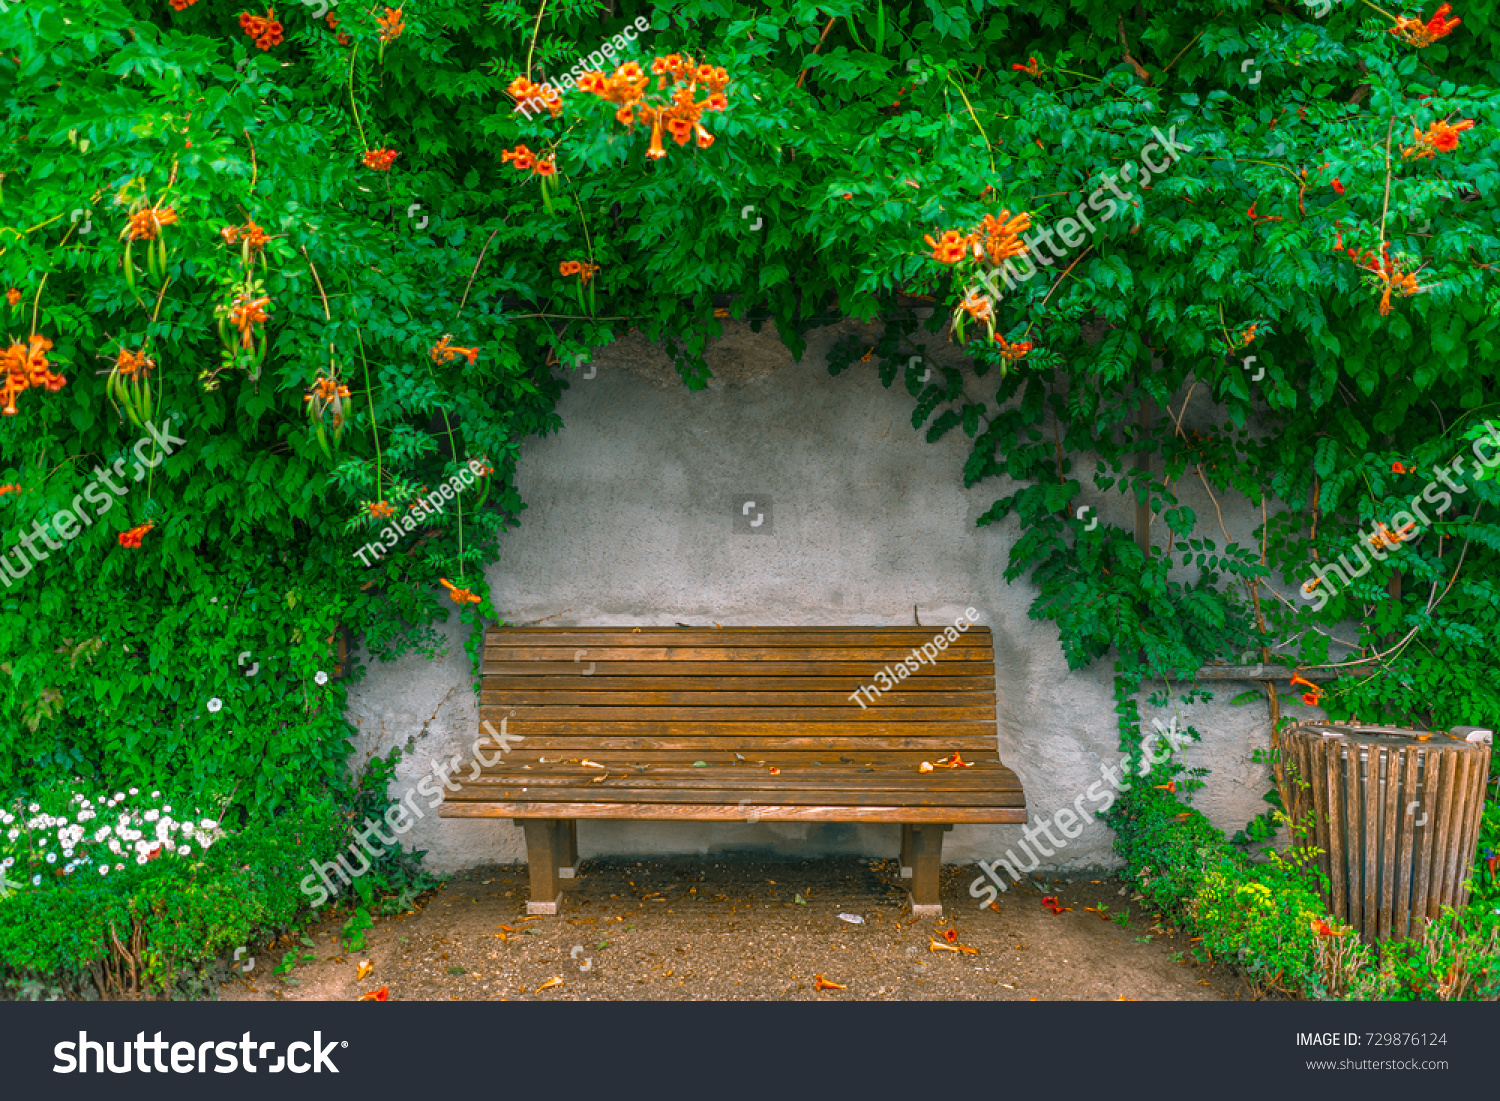 chair photo frame hd slip covers in store flower wooden chairs garden stock edit now 729876124 of